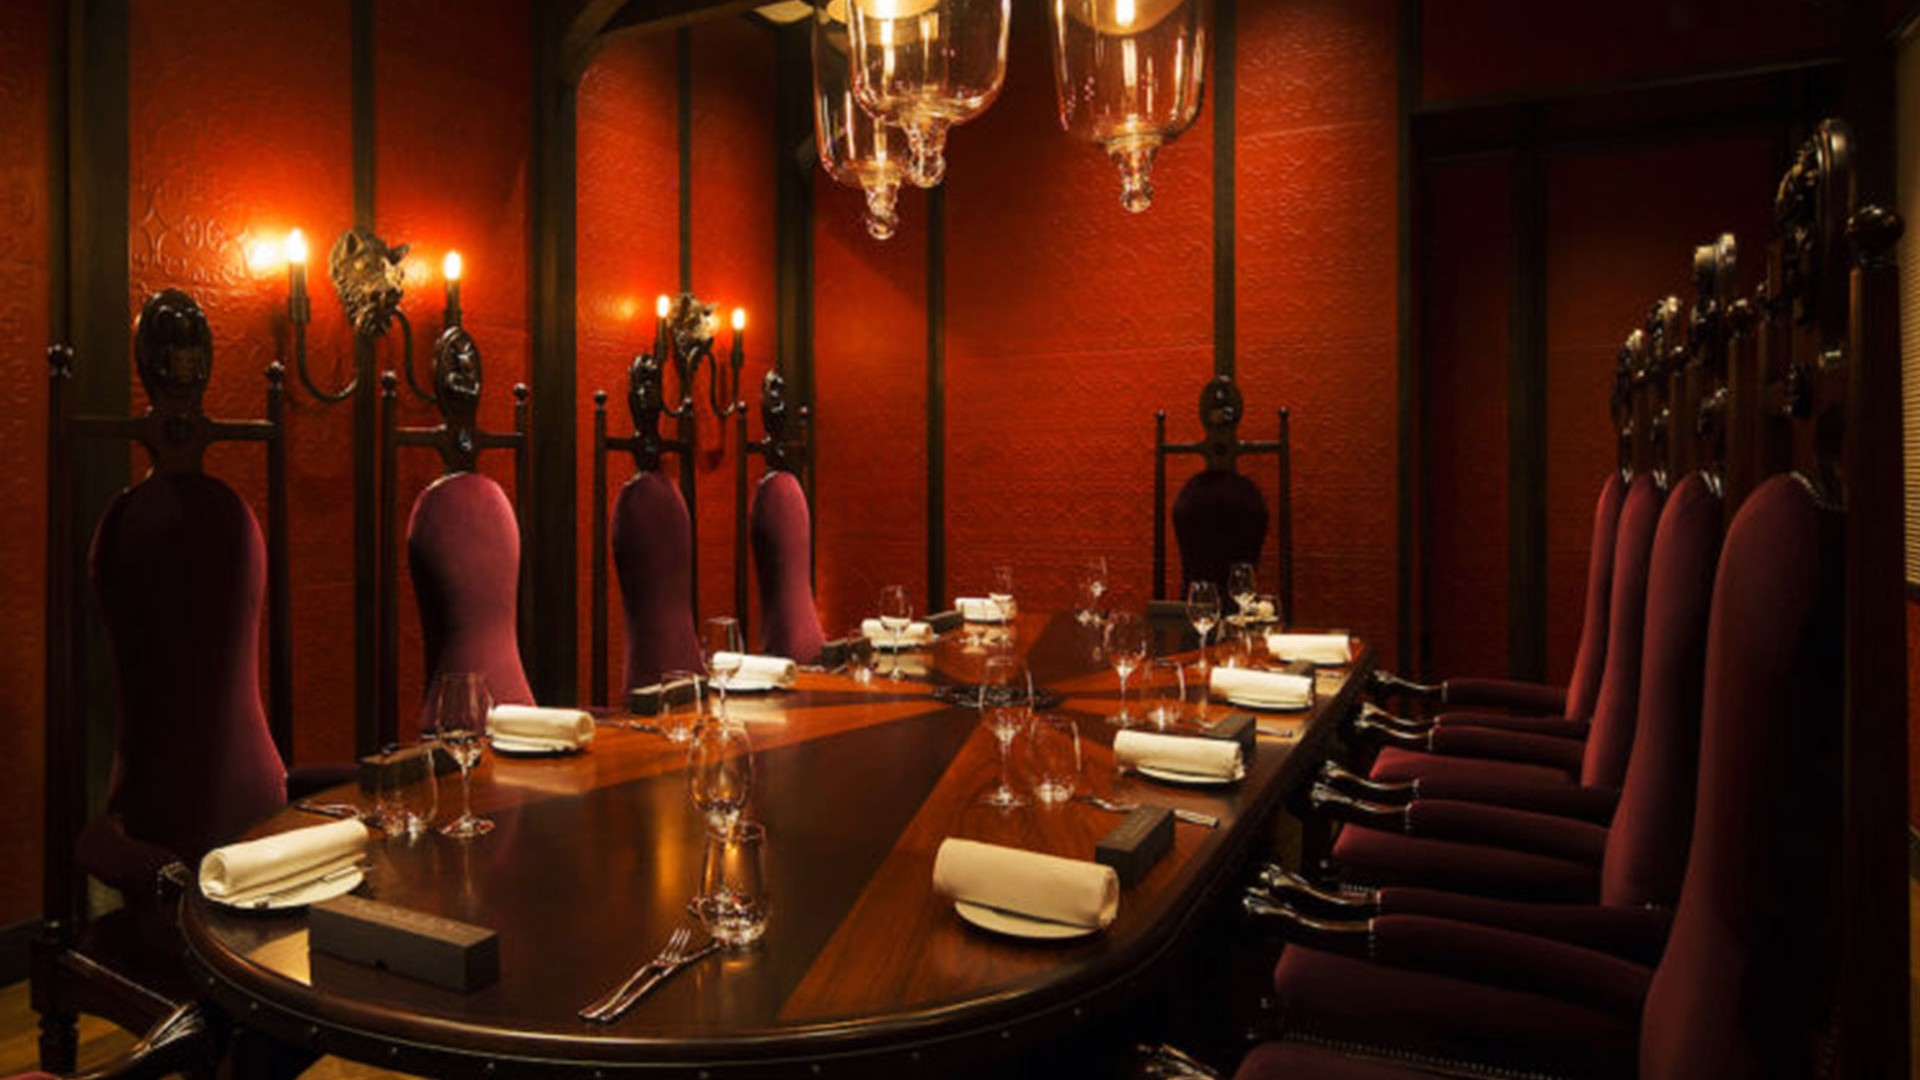 Private dining table at Dinner by Heston Blumenthal